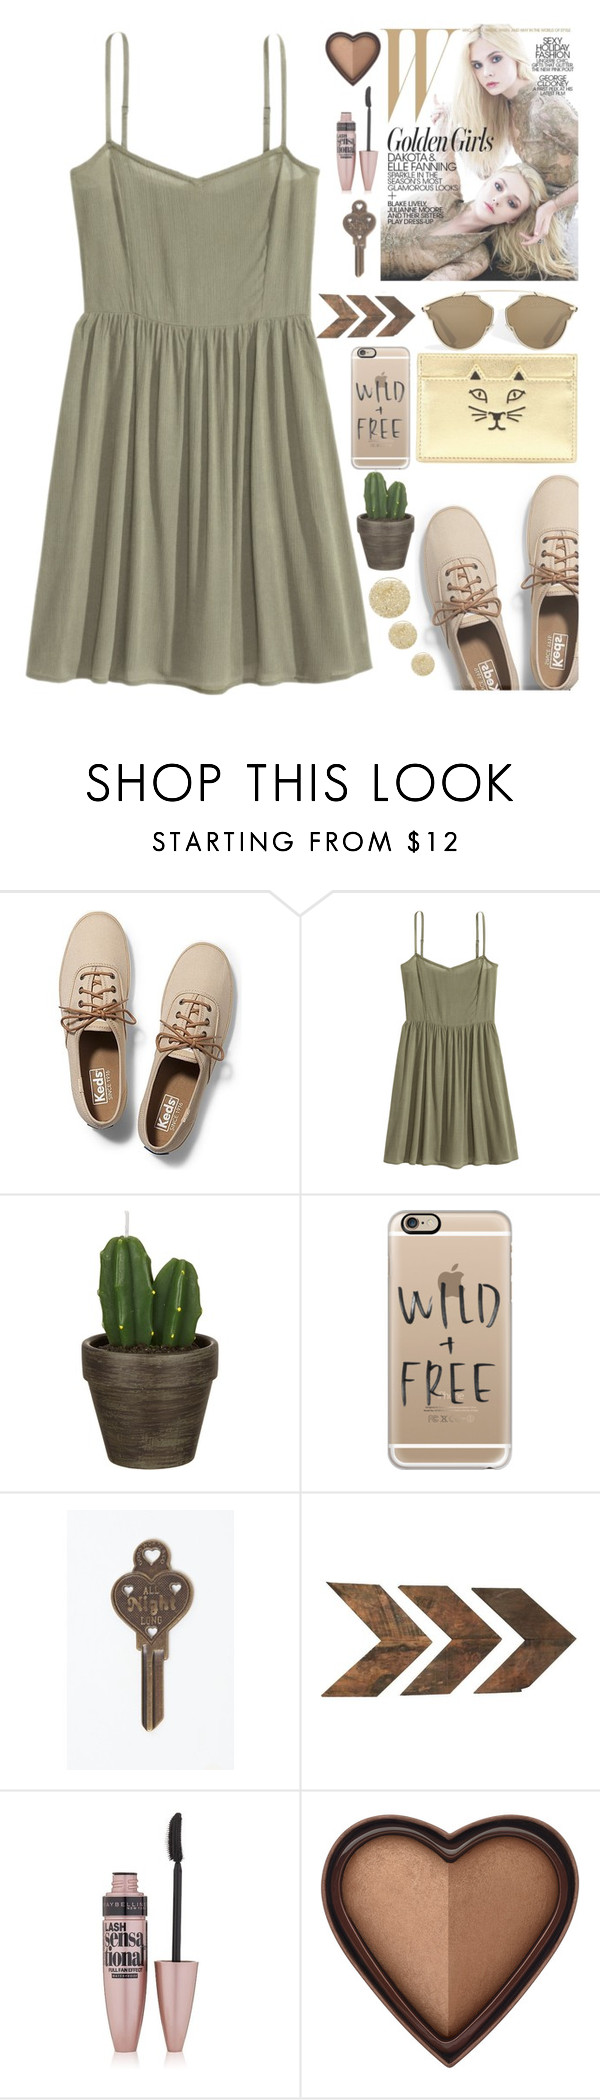 """Army Chic"" by preciouspearll ❤ liked on Polyvore featuring Keds, John Lewis, Casetify, Good Worth & Co., Maybelline, Too Faced Cosmetics, Lancôme, gold, GREEN and army"